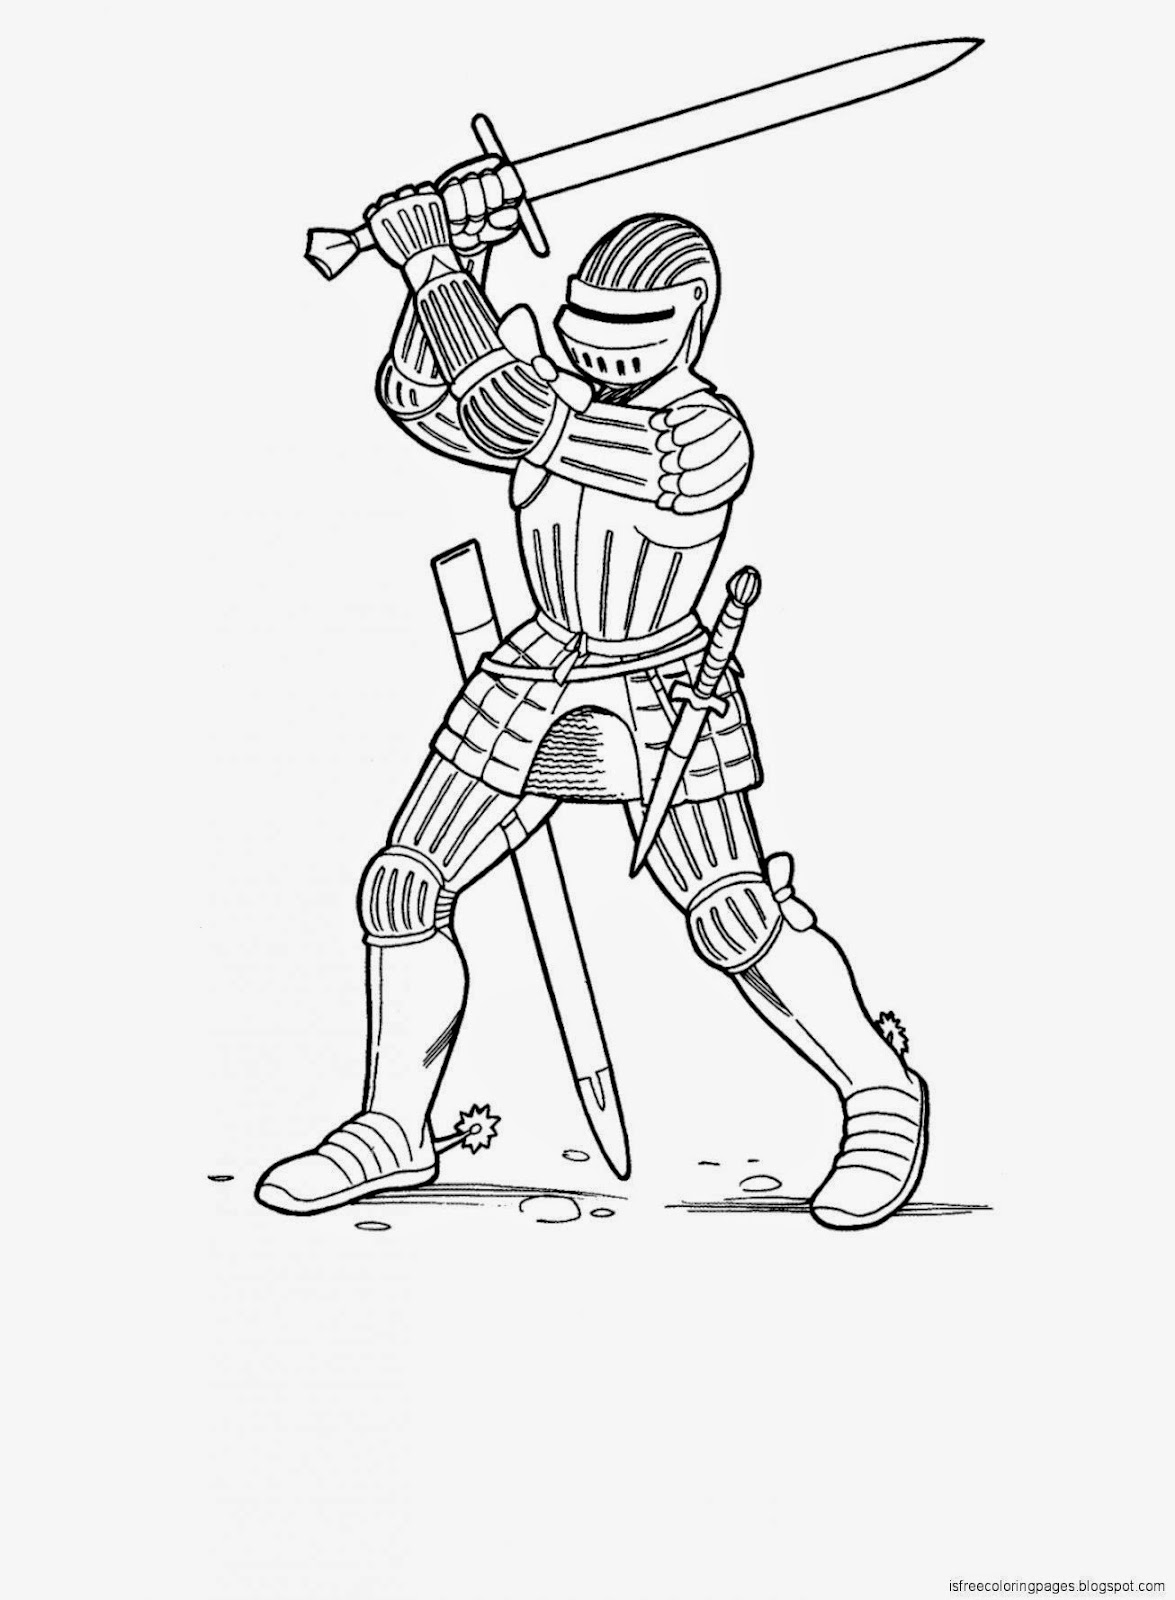 Free Coloring Pages Knights : Knights coloring pages free